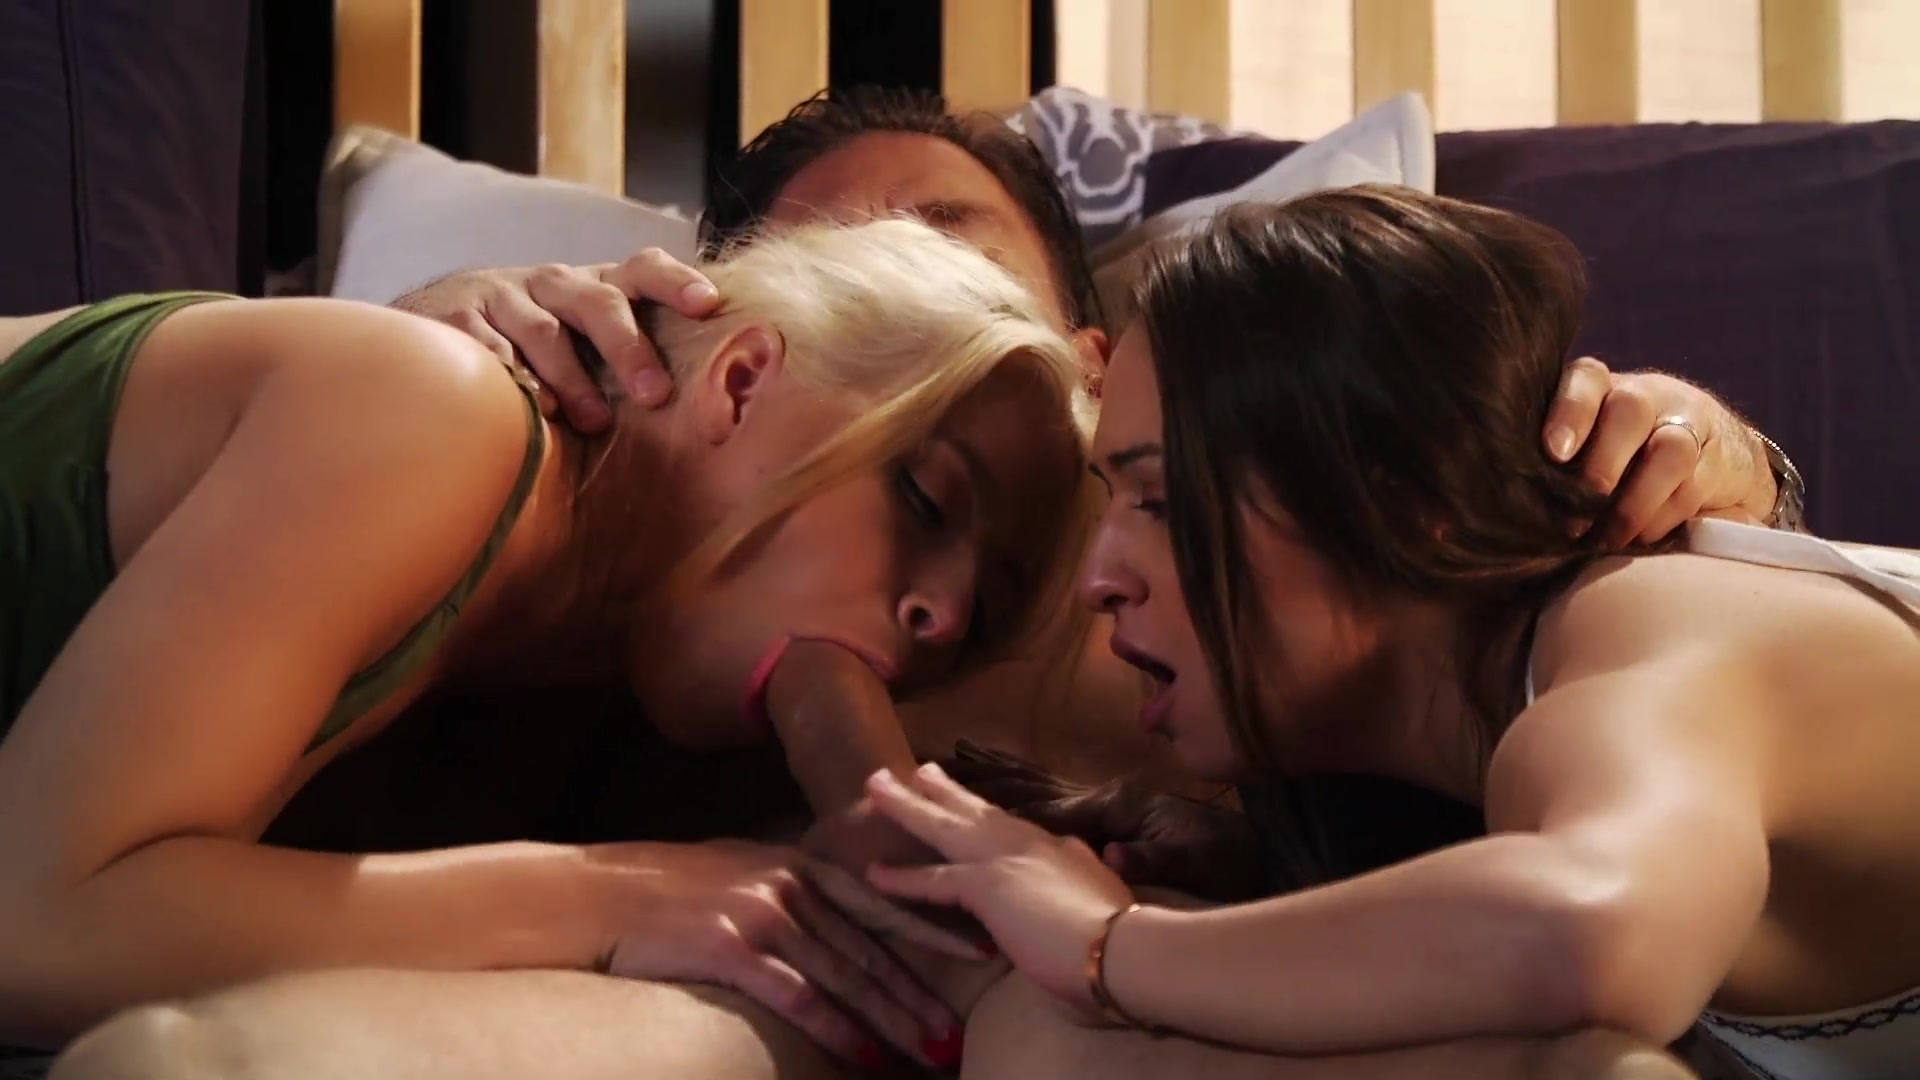 Scene with Mick Blue, Anikka Albrite and Sara Luvv - image 5 out of 20